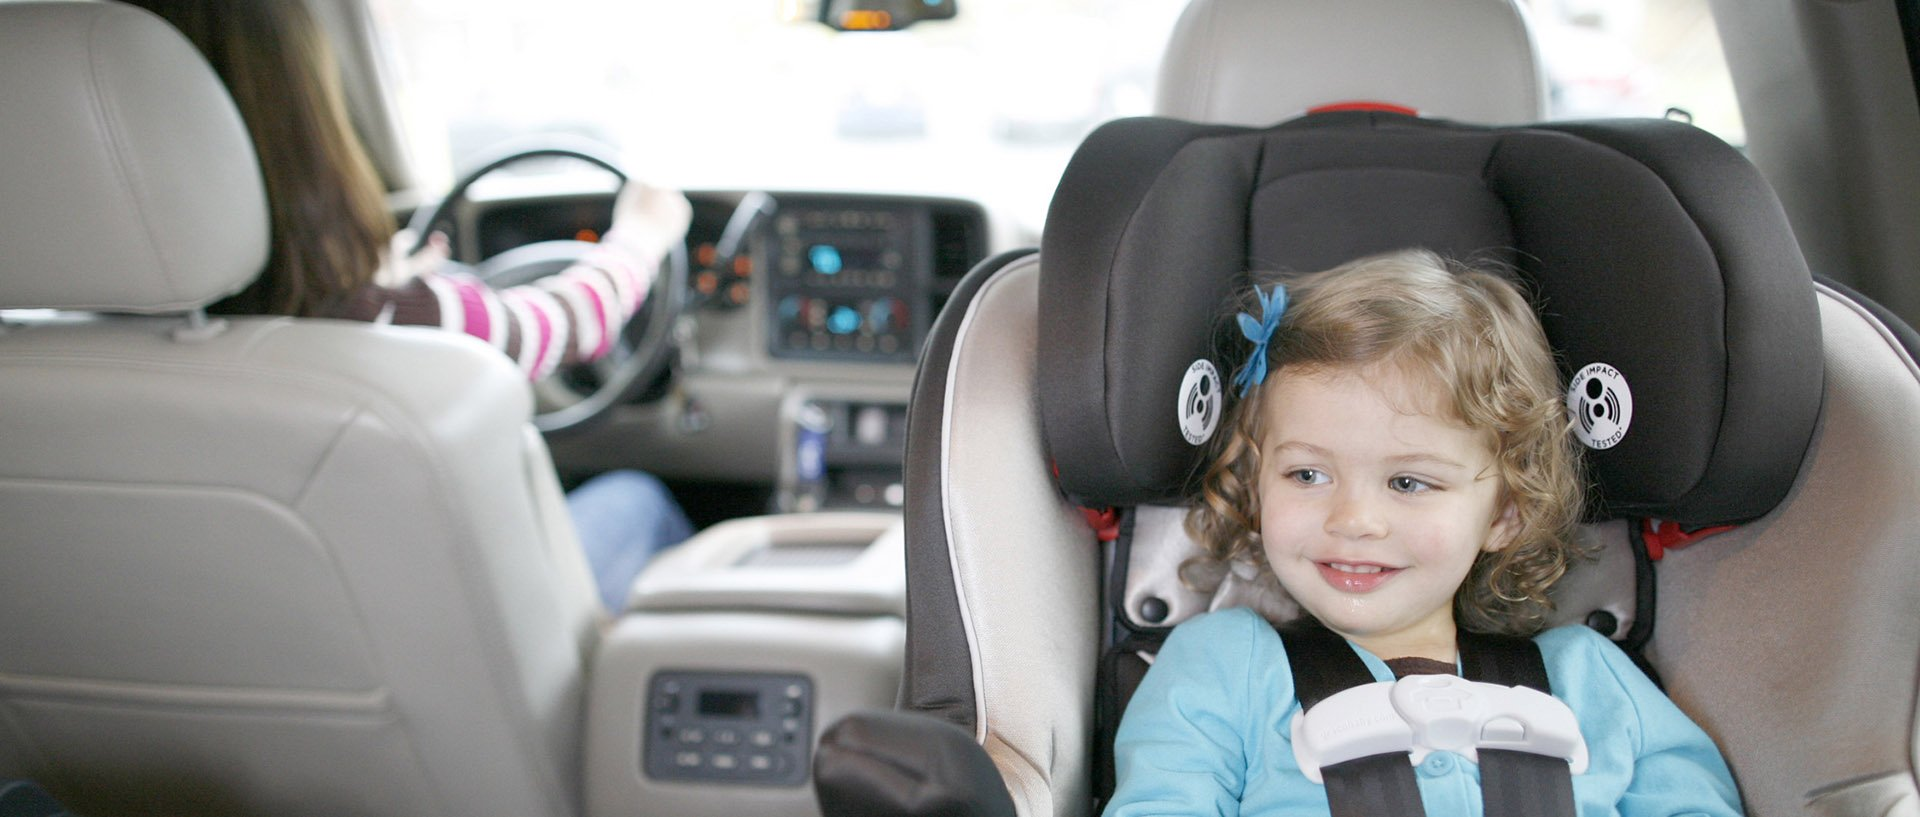 Rear Facing Car Seat Age 4 Florida Car Seat Laws A Complete Guide Updated For 2019